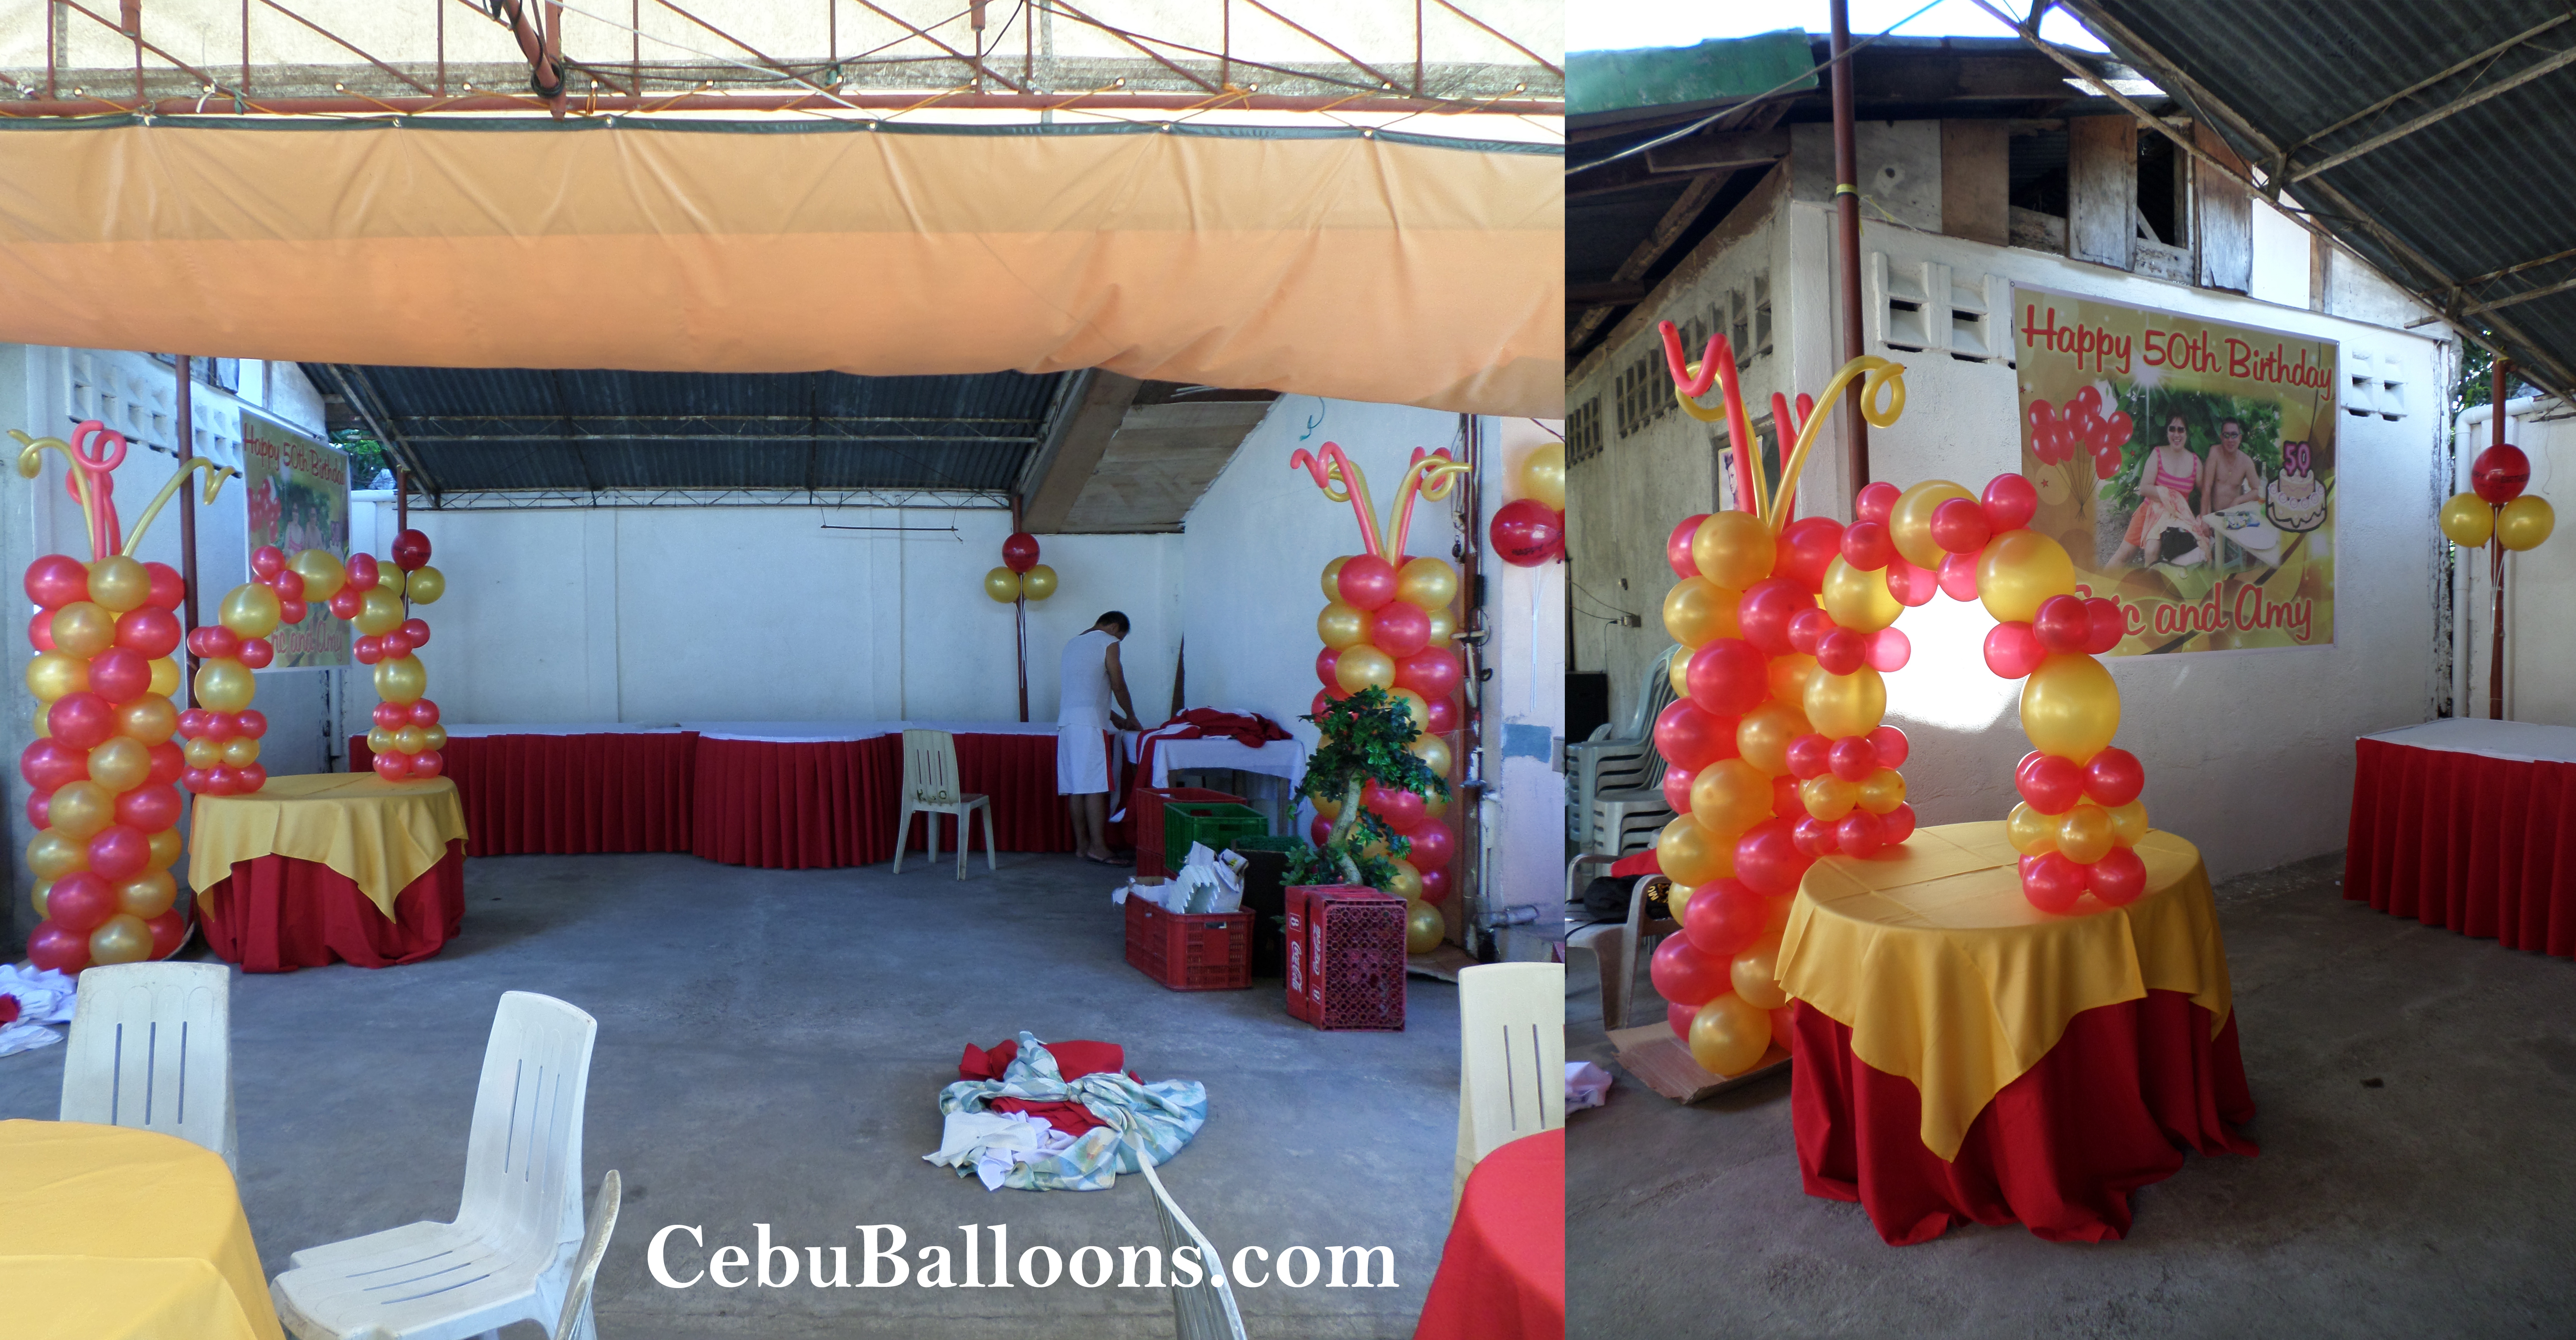 Red Gold Silver Balloon Decorations For A 60th Birthday At Paradise Garden Events Pavillion